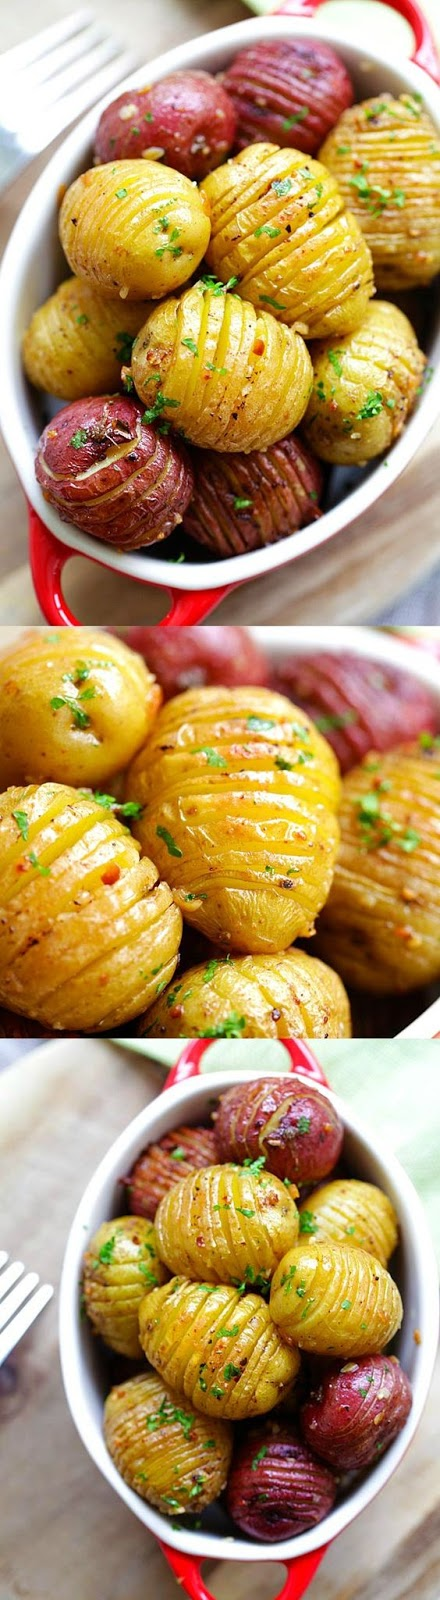 Everyone loves roasted potatoes, a side dish that is all-season friendly. They are great with everything: meat, chicken, fish, pasta; making it one of the most versatile side dishes to serve to your family.